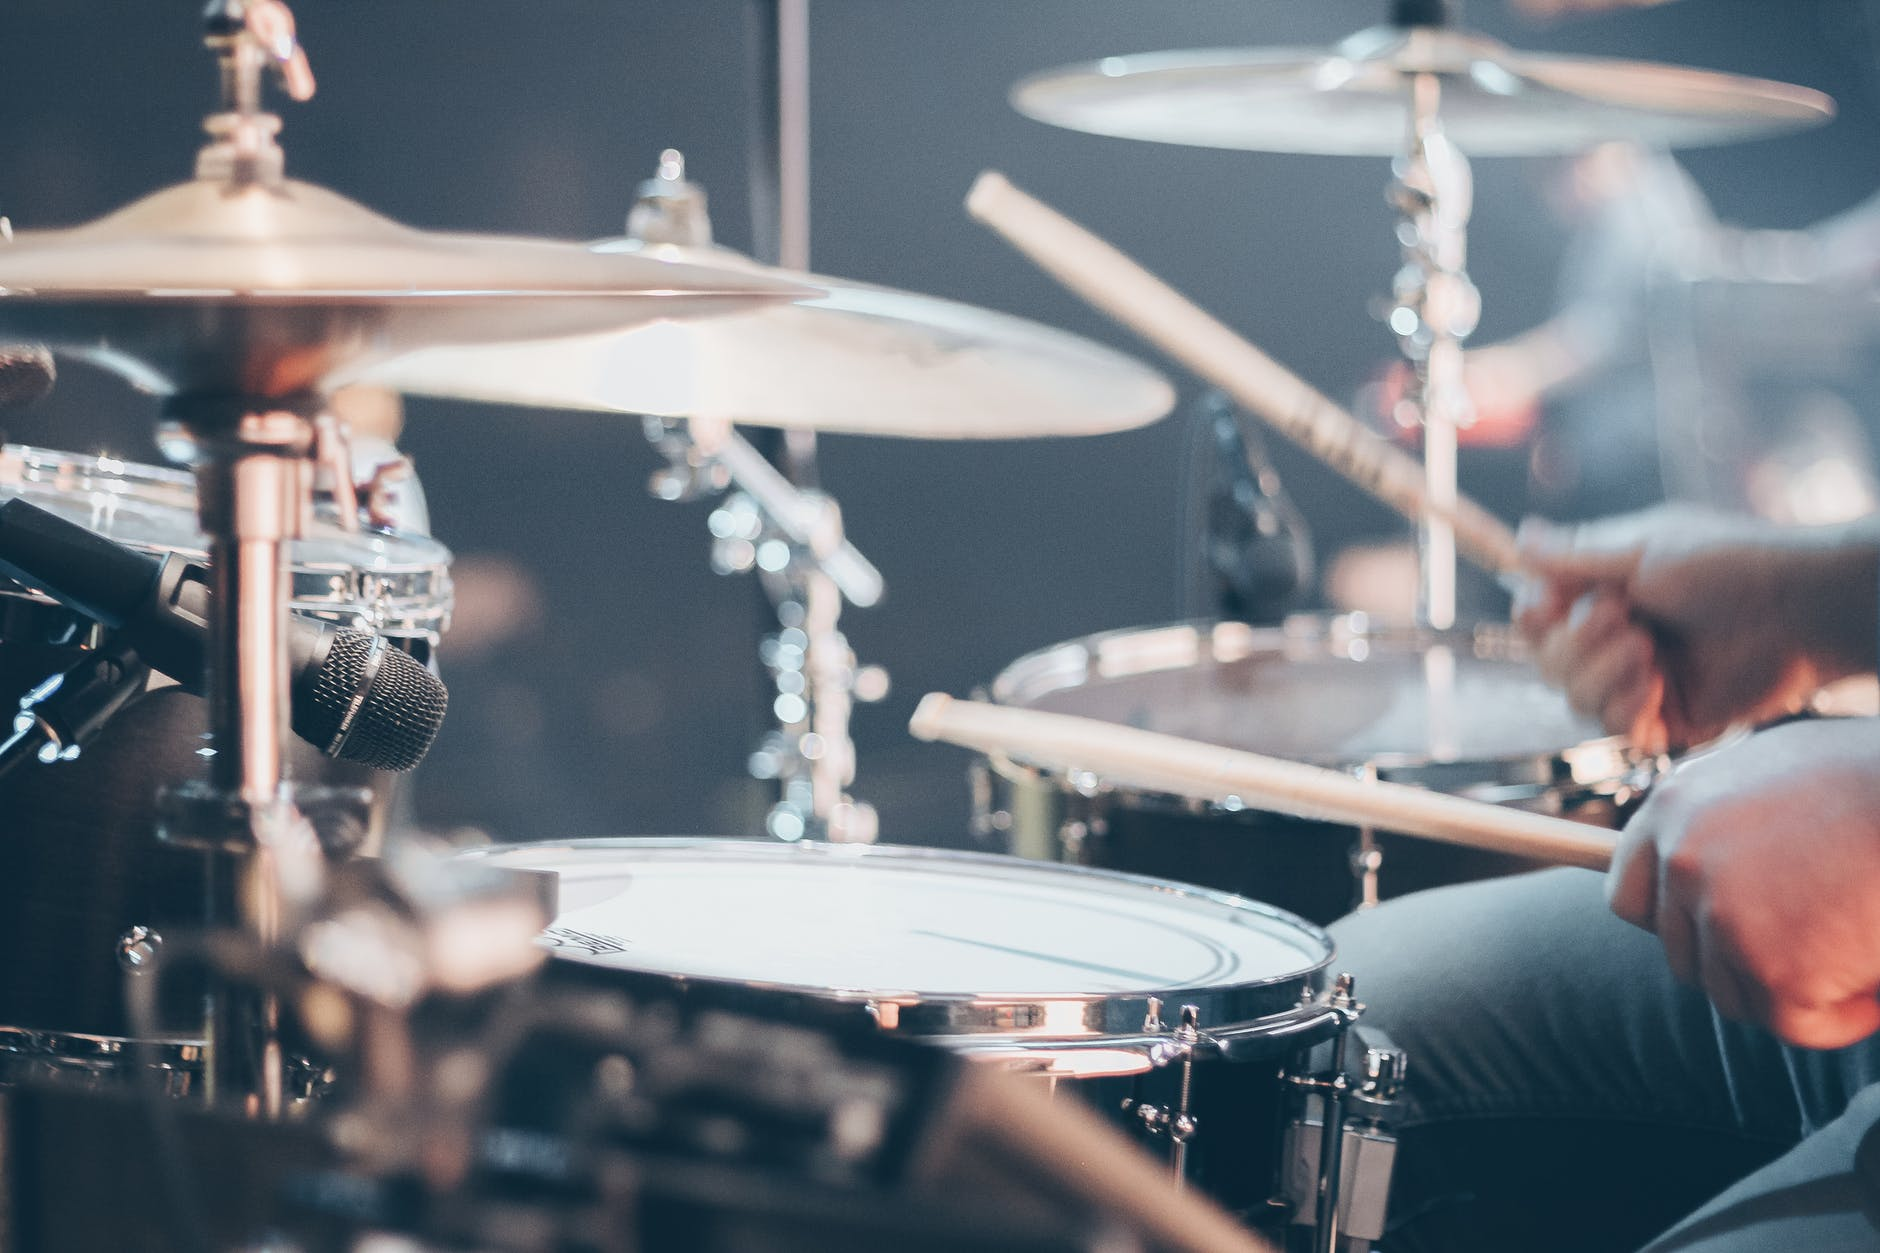 /static/uploads/users/588/thumbnails/downloads/close-up-photo-of-drum-set-995301x600.jpeg